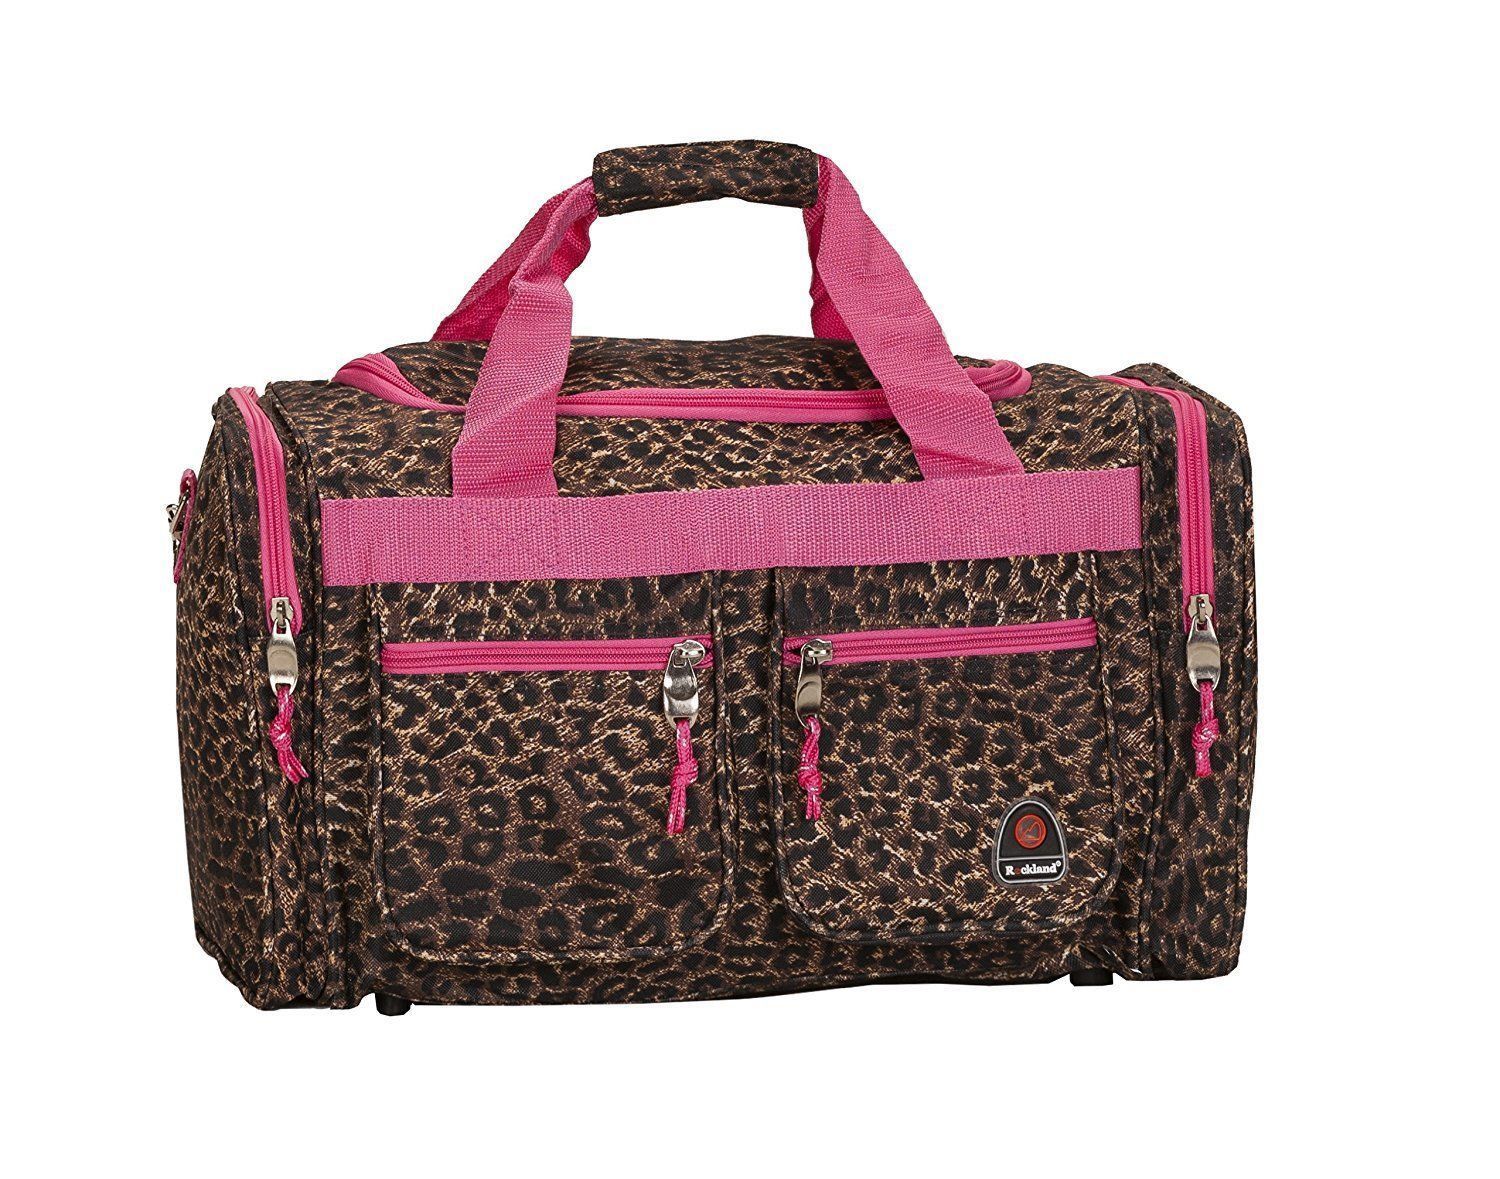 19Inch Luggage Tote Bag Leopard Suitcase Duffle Travel Carry on Baggage Pink